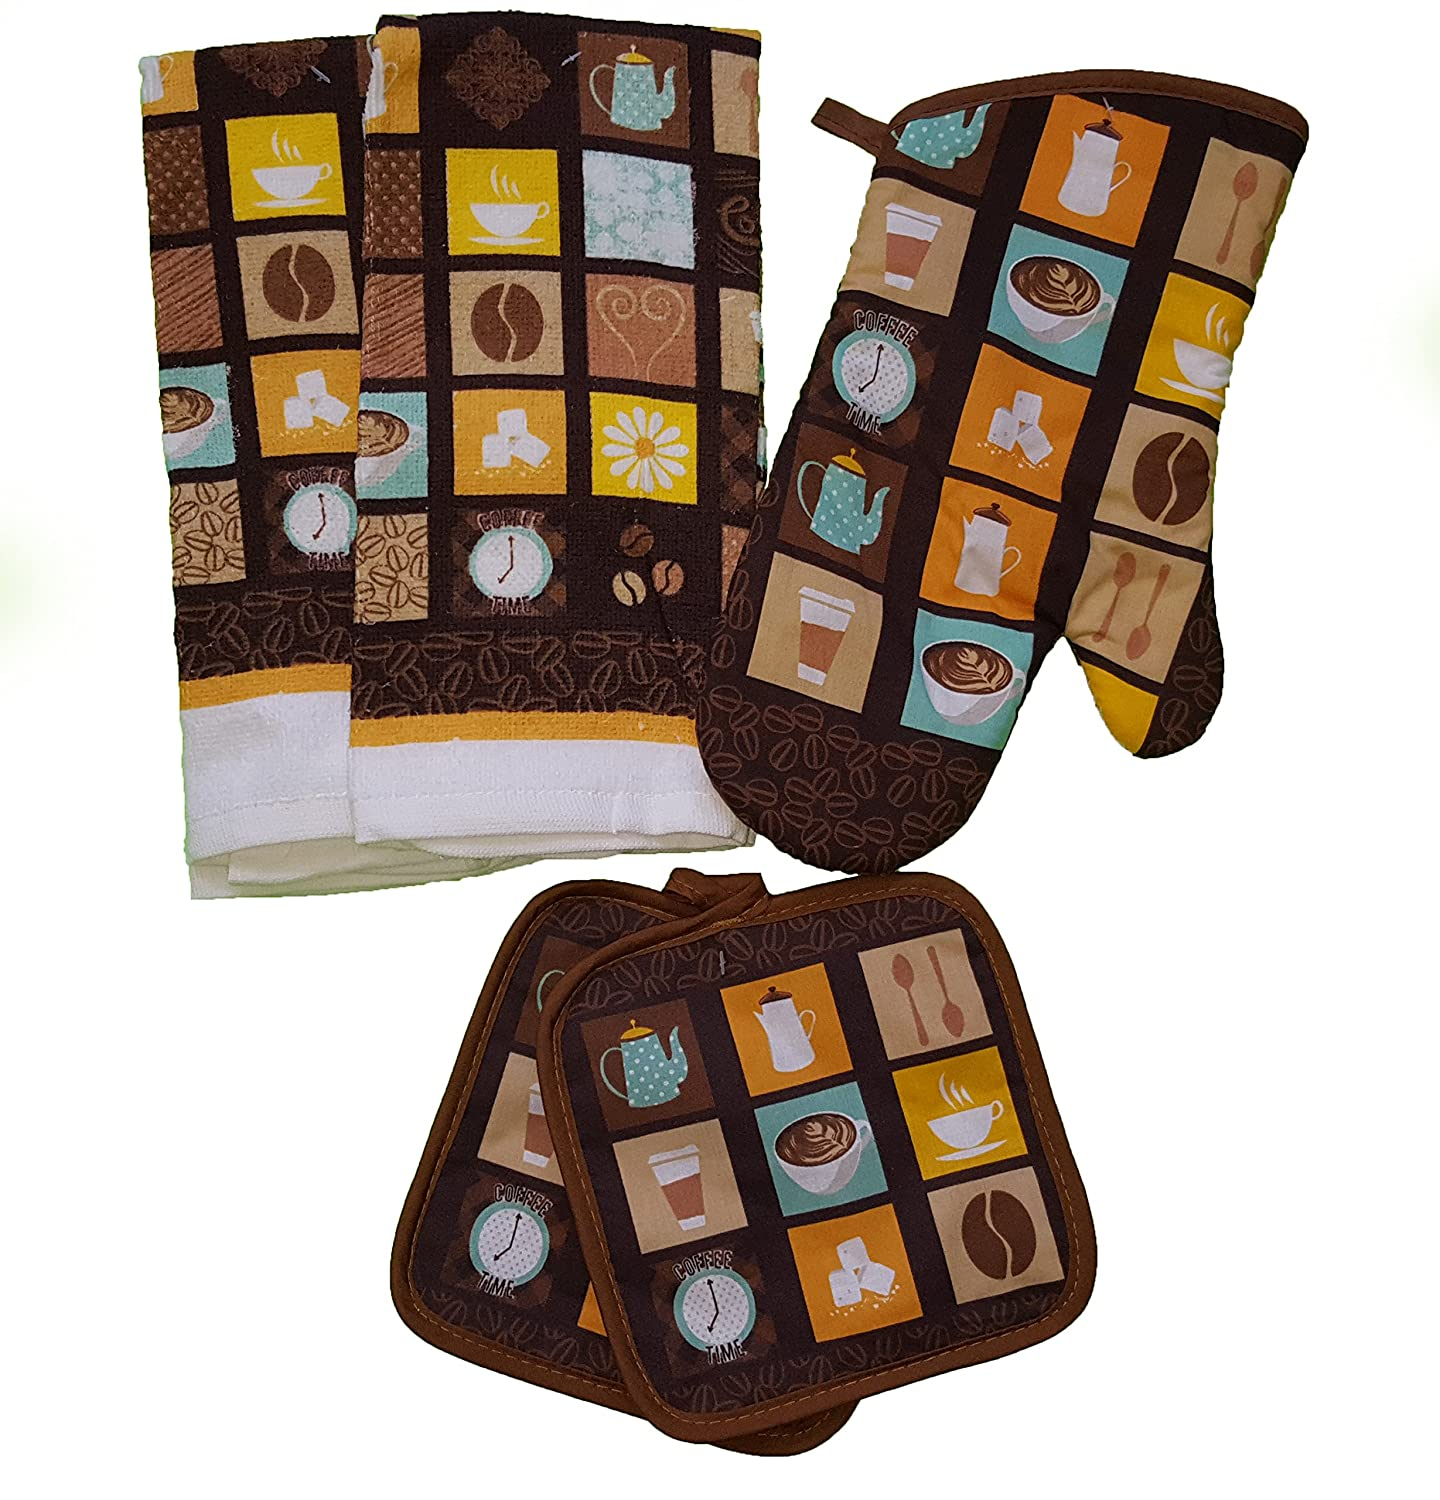 The Spotted Moose Colorful Retro Coffee Latte 5 Piece Kitchen Linen Bundle With 2 Dish Towels, 2 Potholders, and 1 Oven Mitt